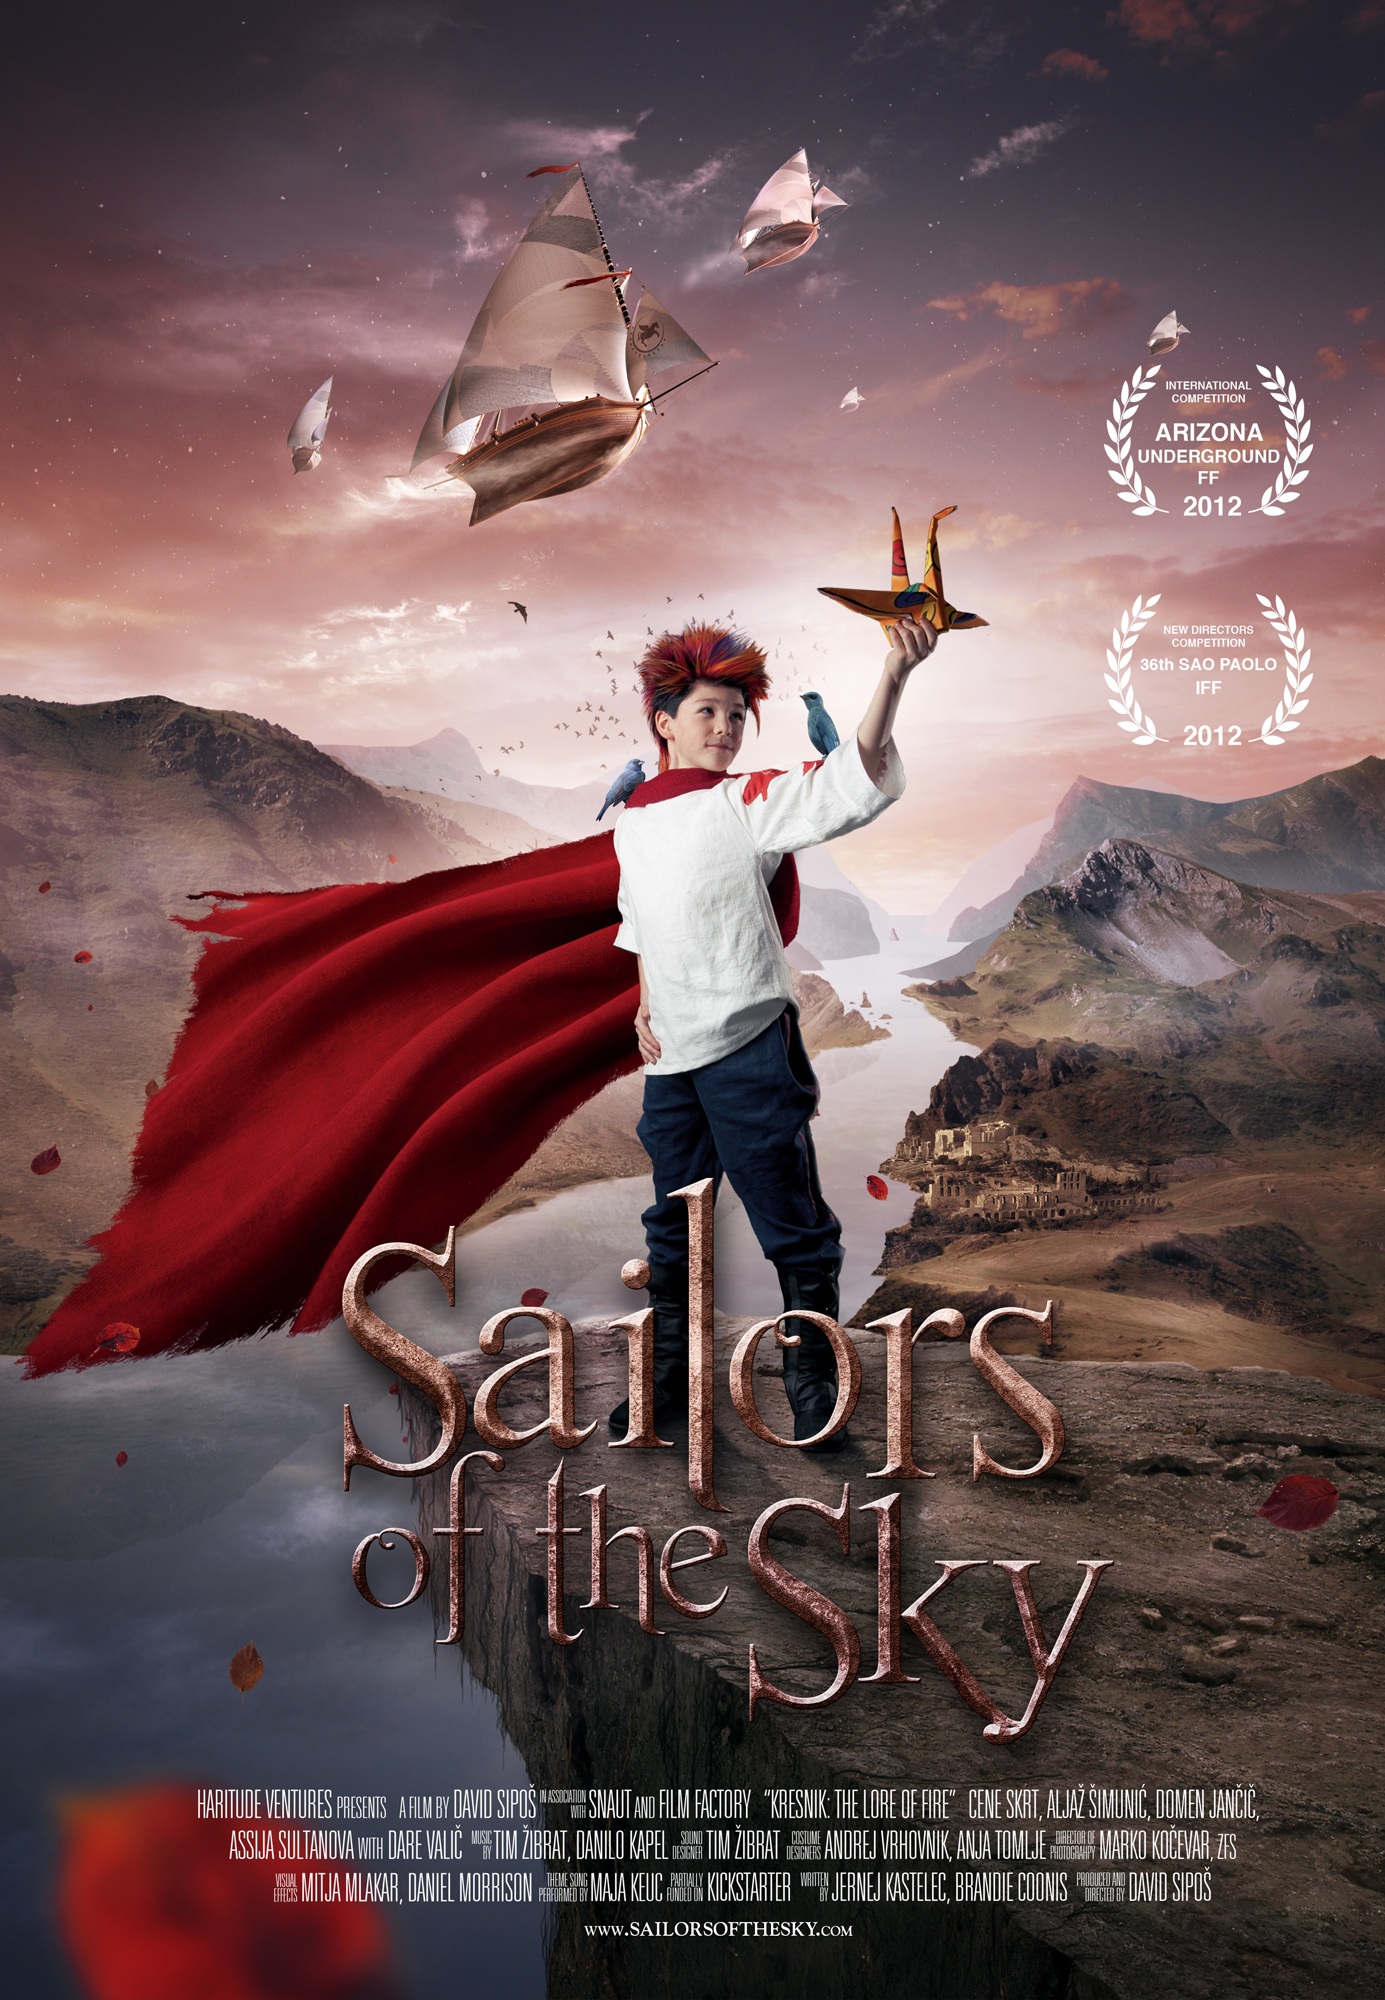 Sailors_of_the_sky_movie_poster_Igor_R_Nilsen